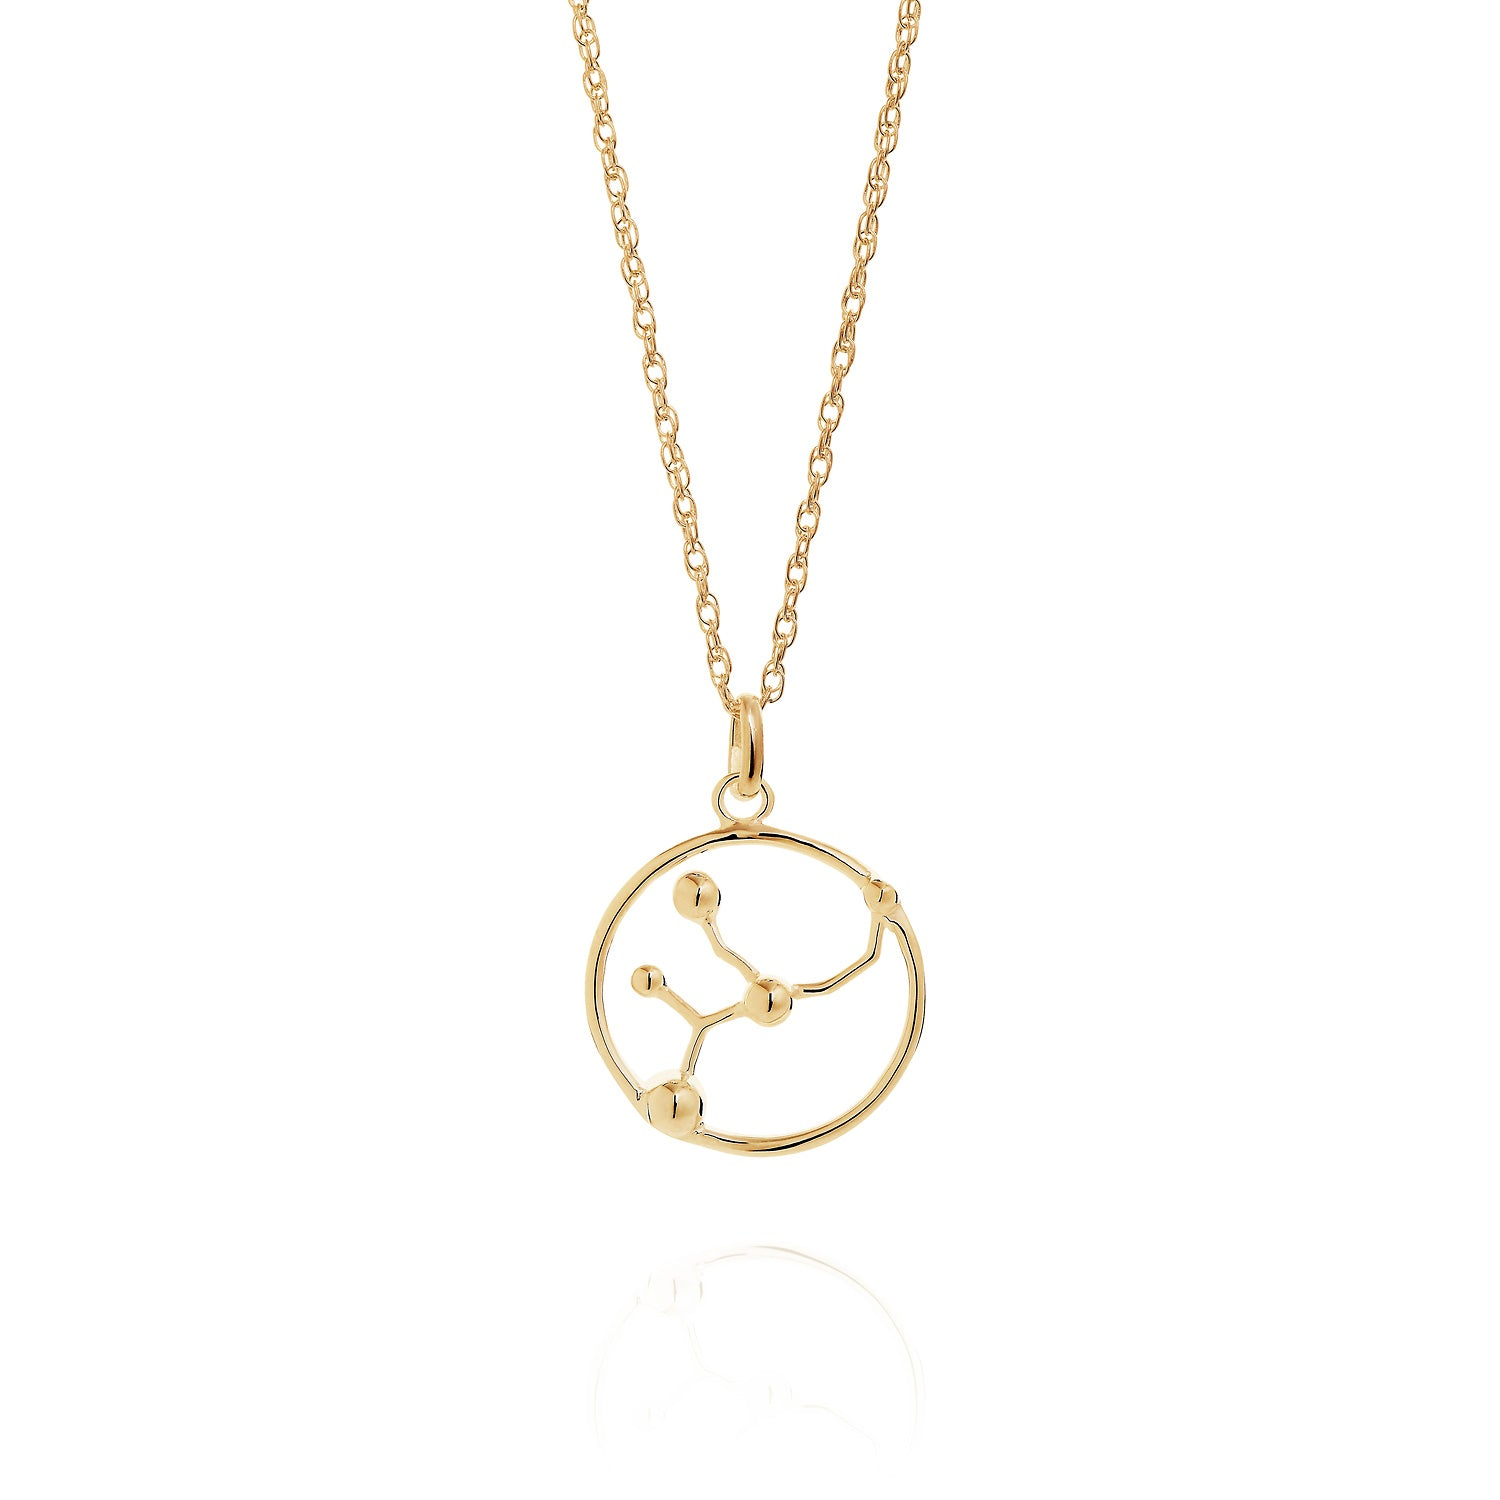 Gold Virgo astrology star sign Necklace